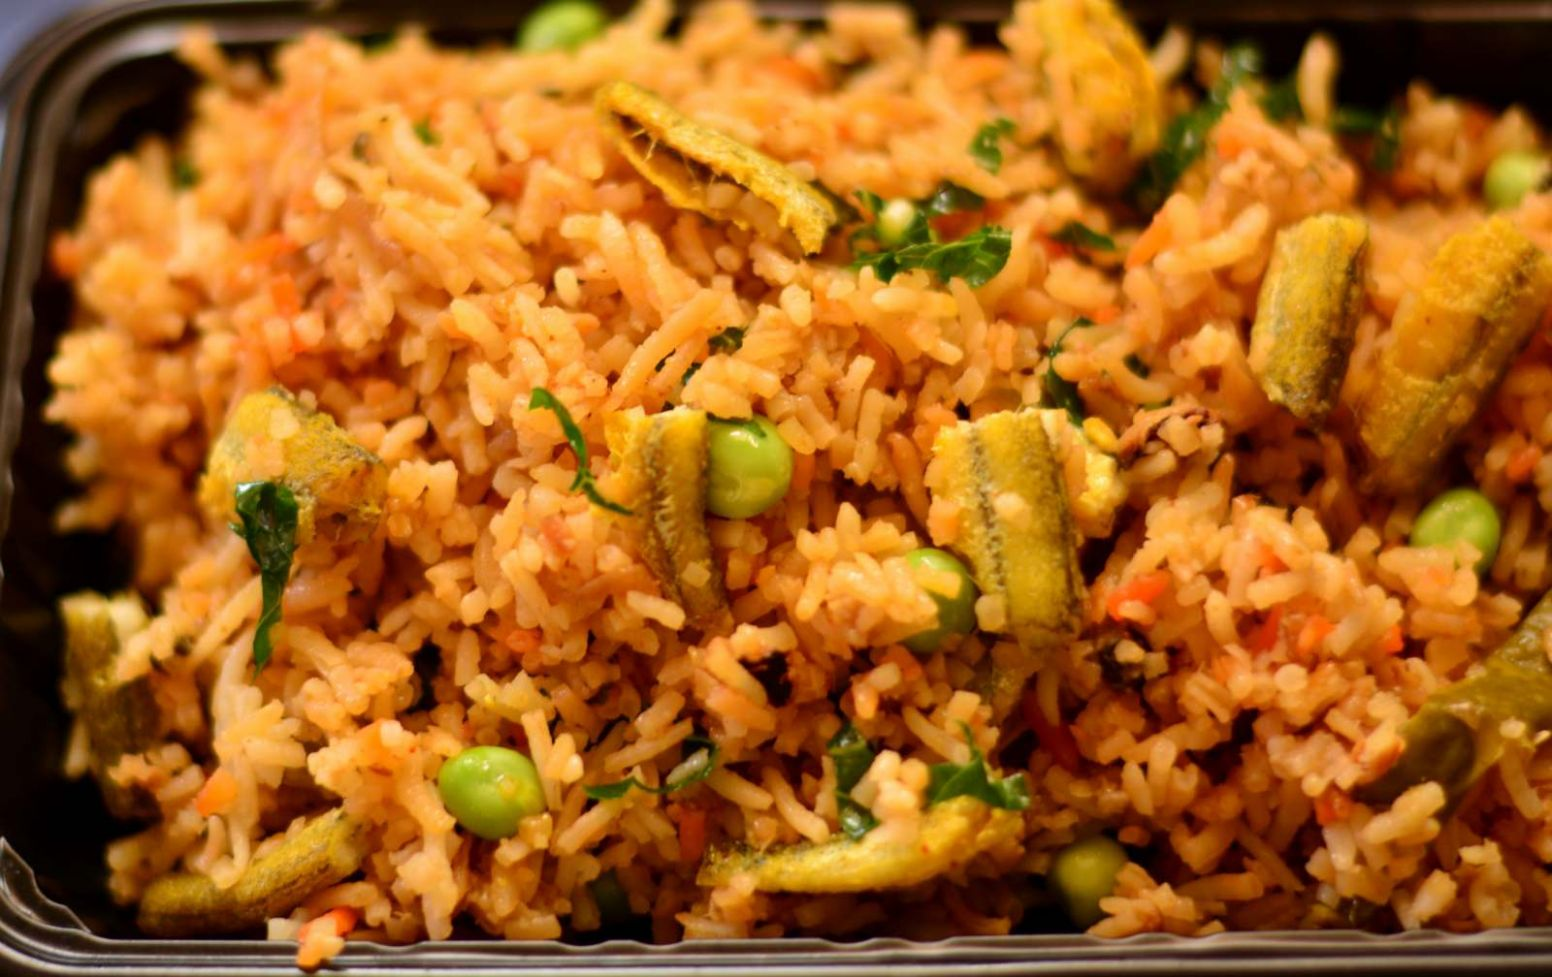 Assamese Fish Fried Rice Recipe - Recipes Fish And Rice